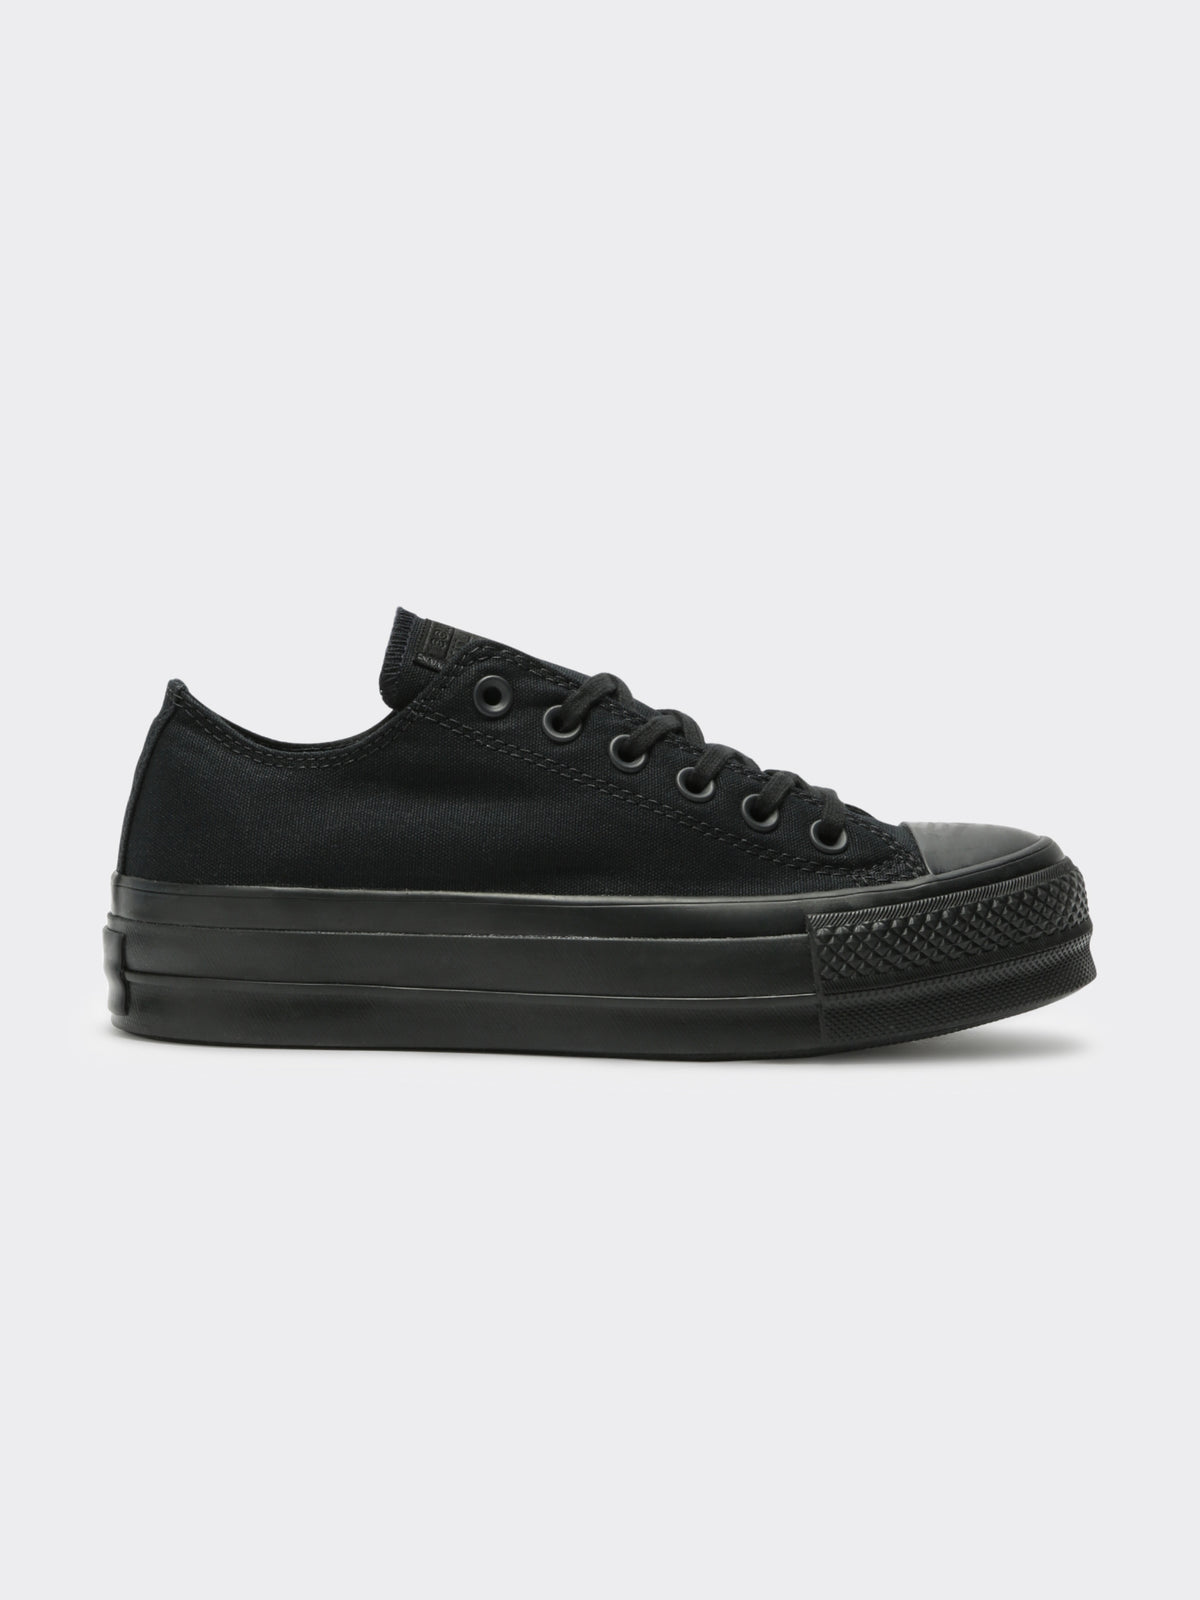 Womens Chuck Taylor All Star Lift Platform Sneakers in Ox Black